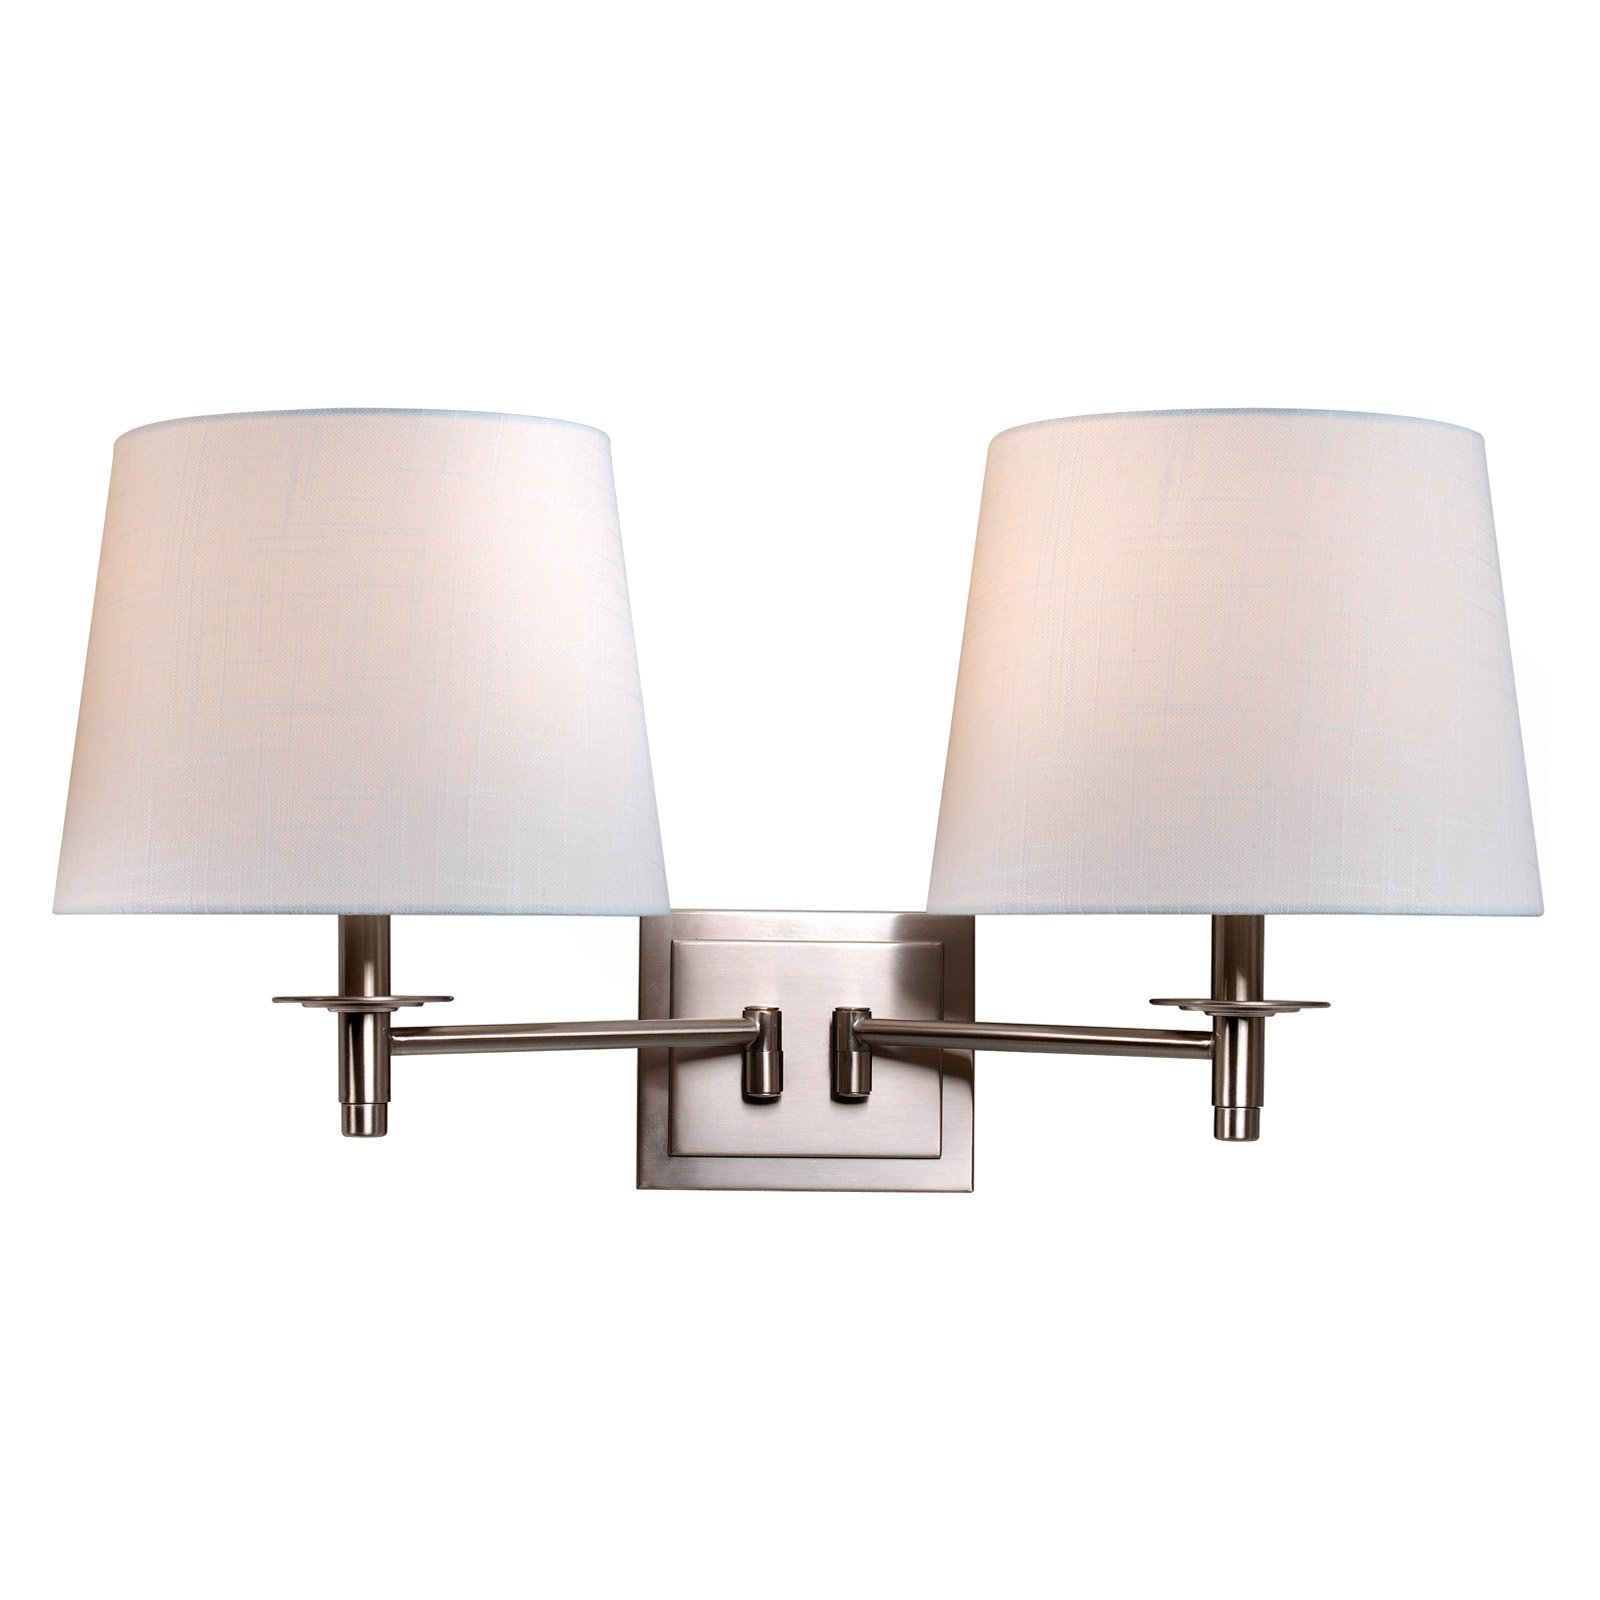 Kenroy Home Glenn Wall Swing Arm Lamp by Kenroy Home